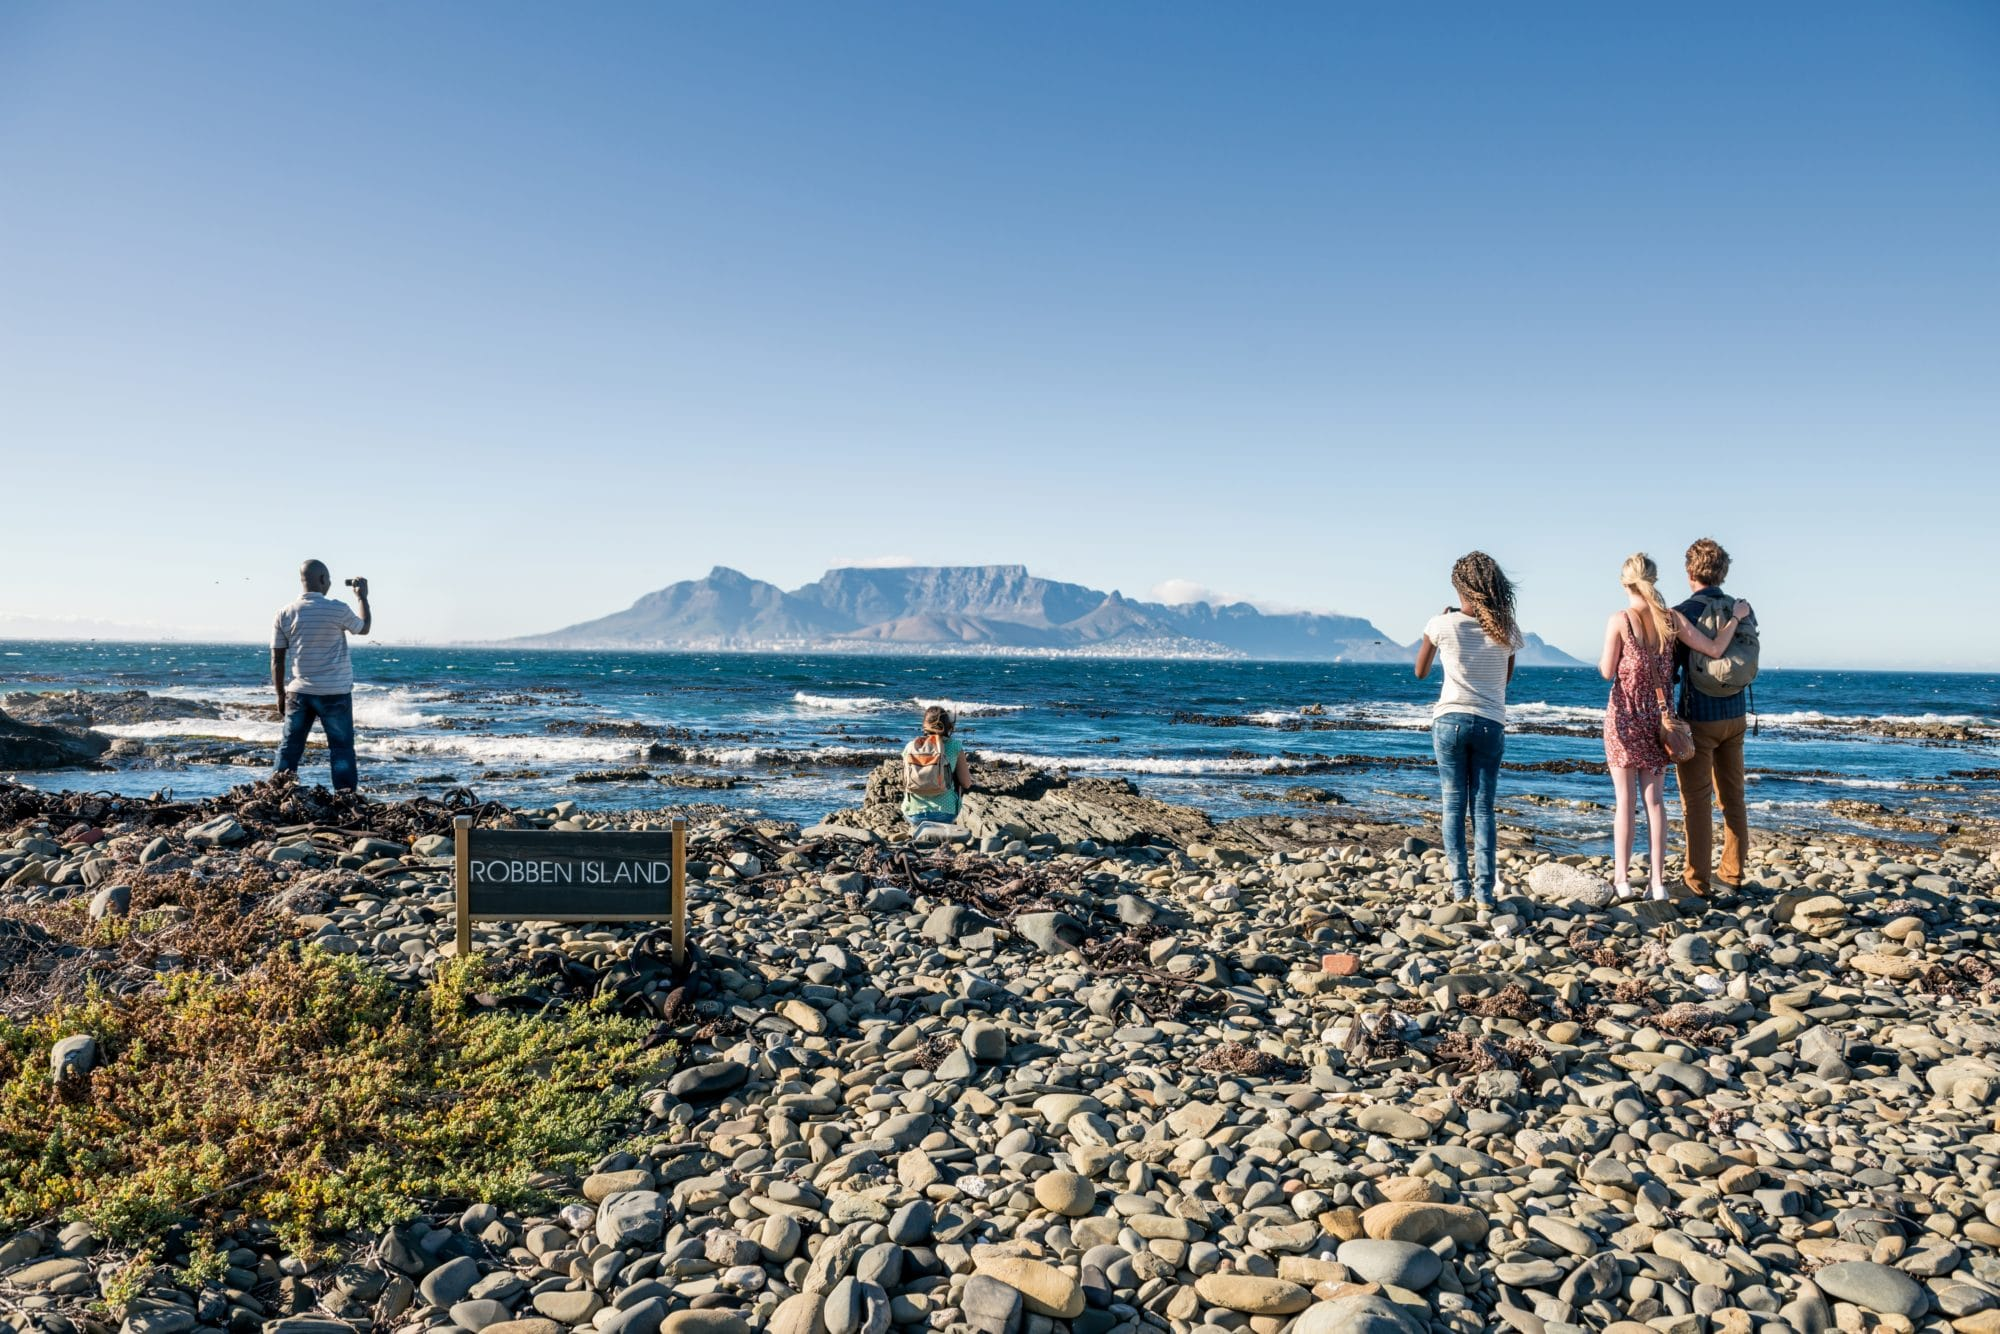 scenic view from robben island